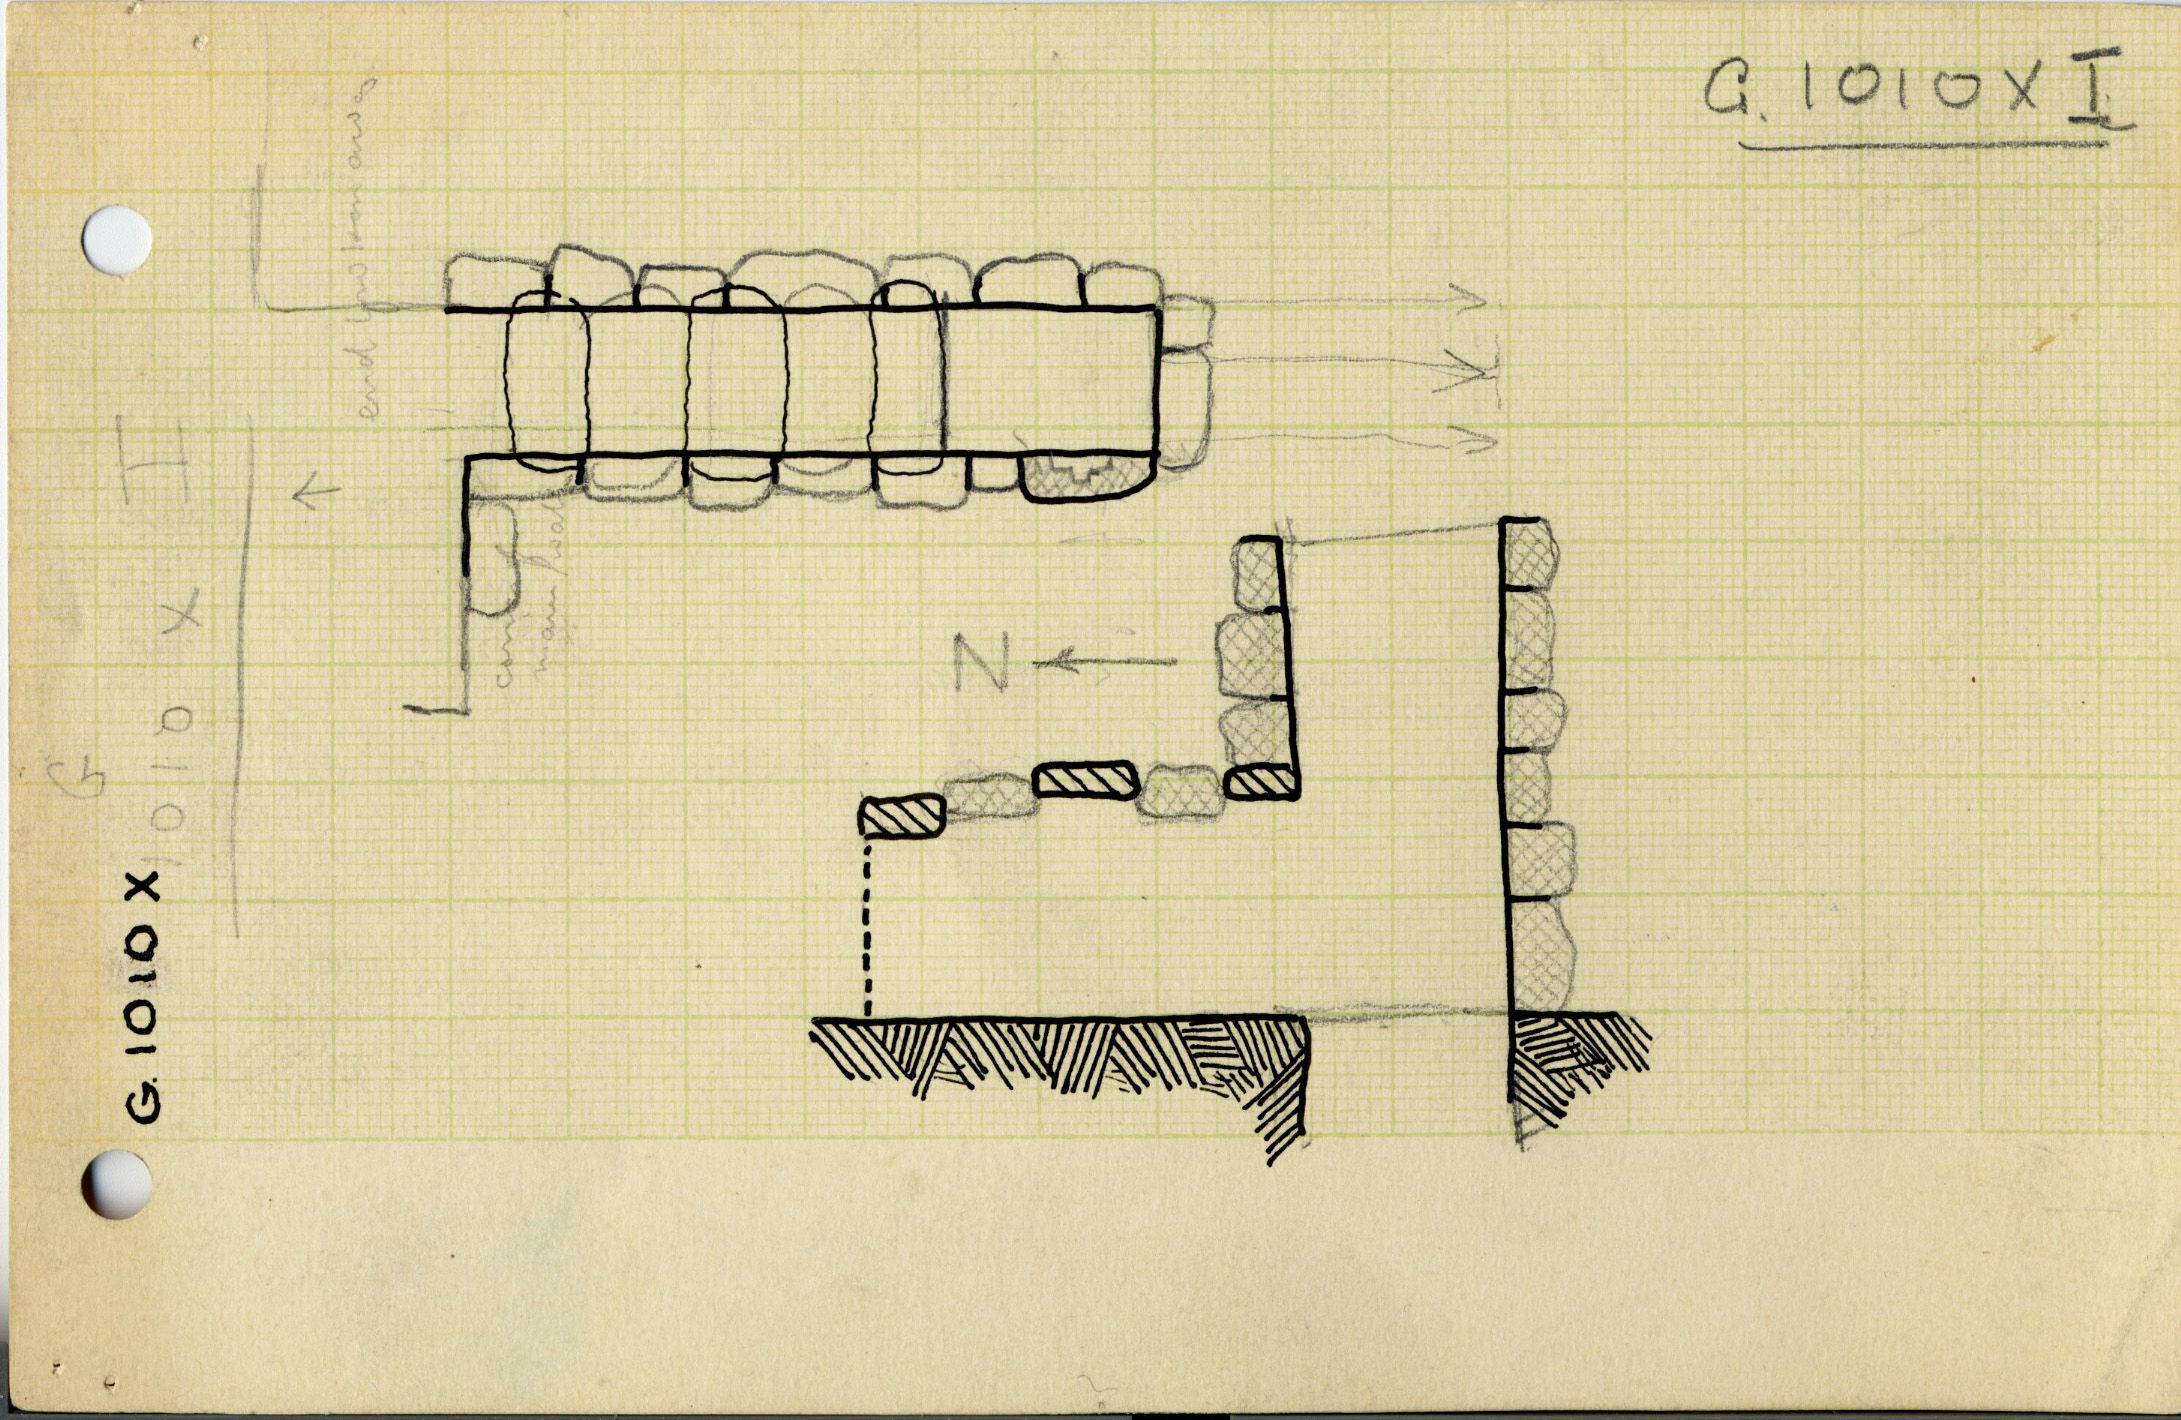 Maps and plans: G 1010, Shaft X (I)